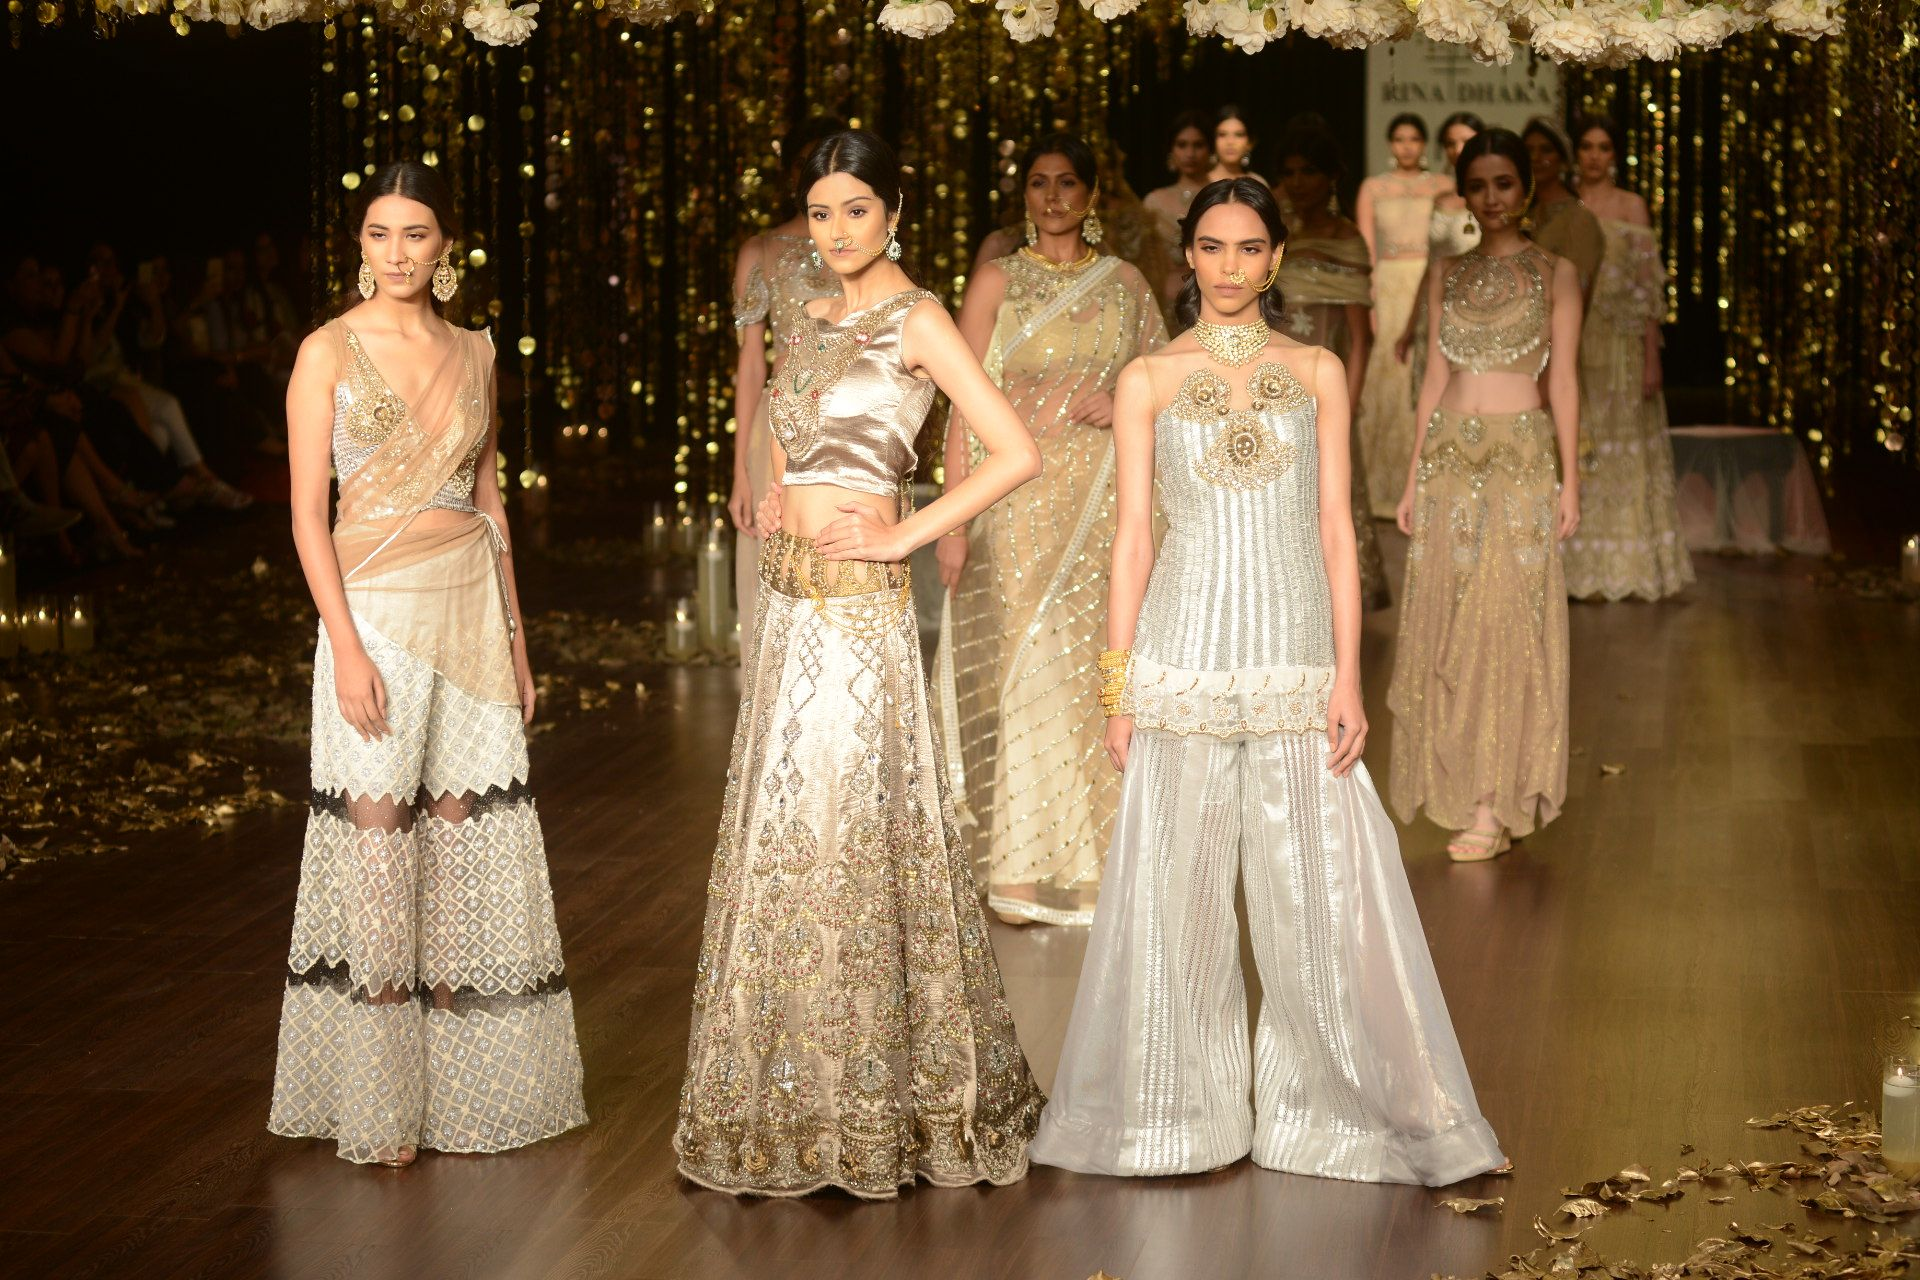 The silhouettes were graceful in their softness and sensuality the